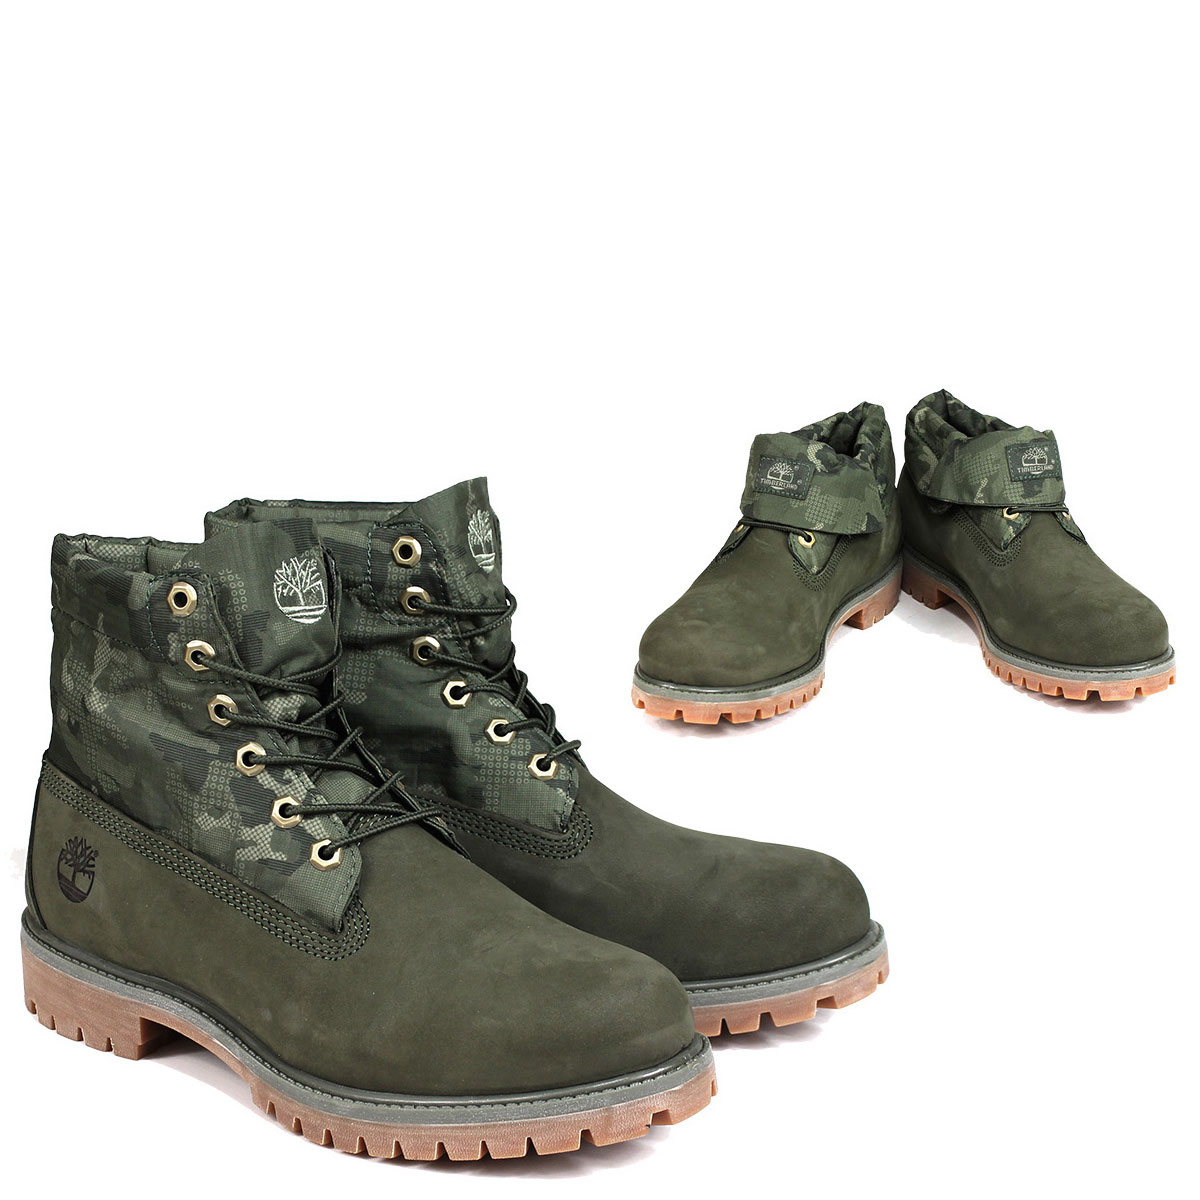 f98558afed21c Green Timberland Boots Release Date - Image Collections Boot